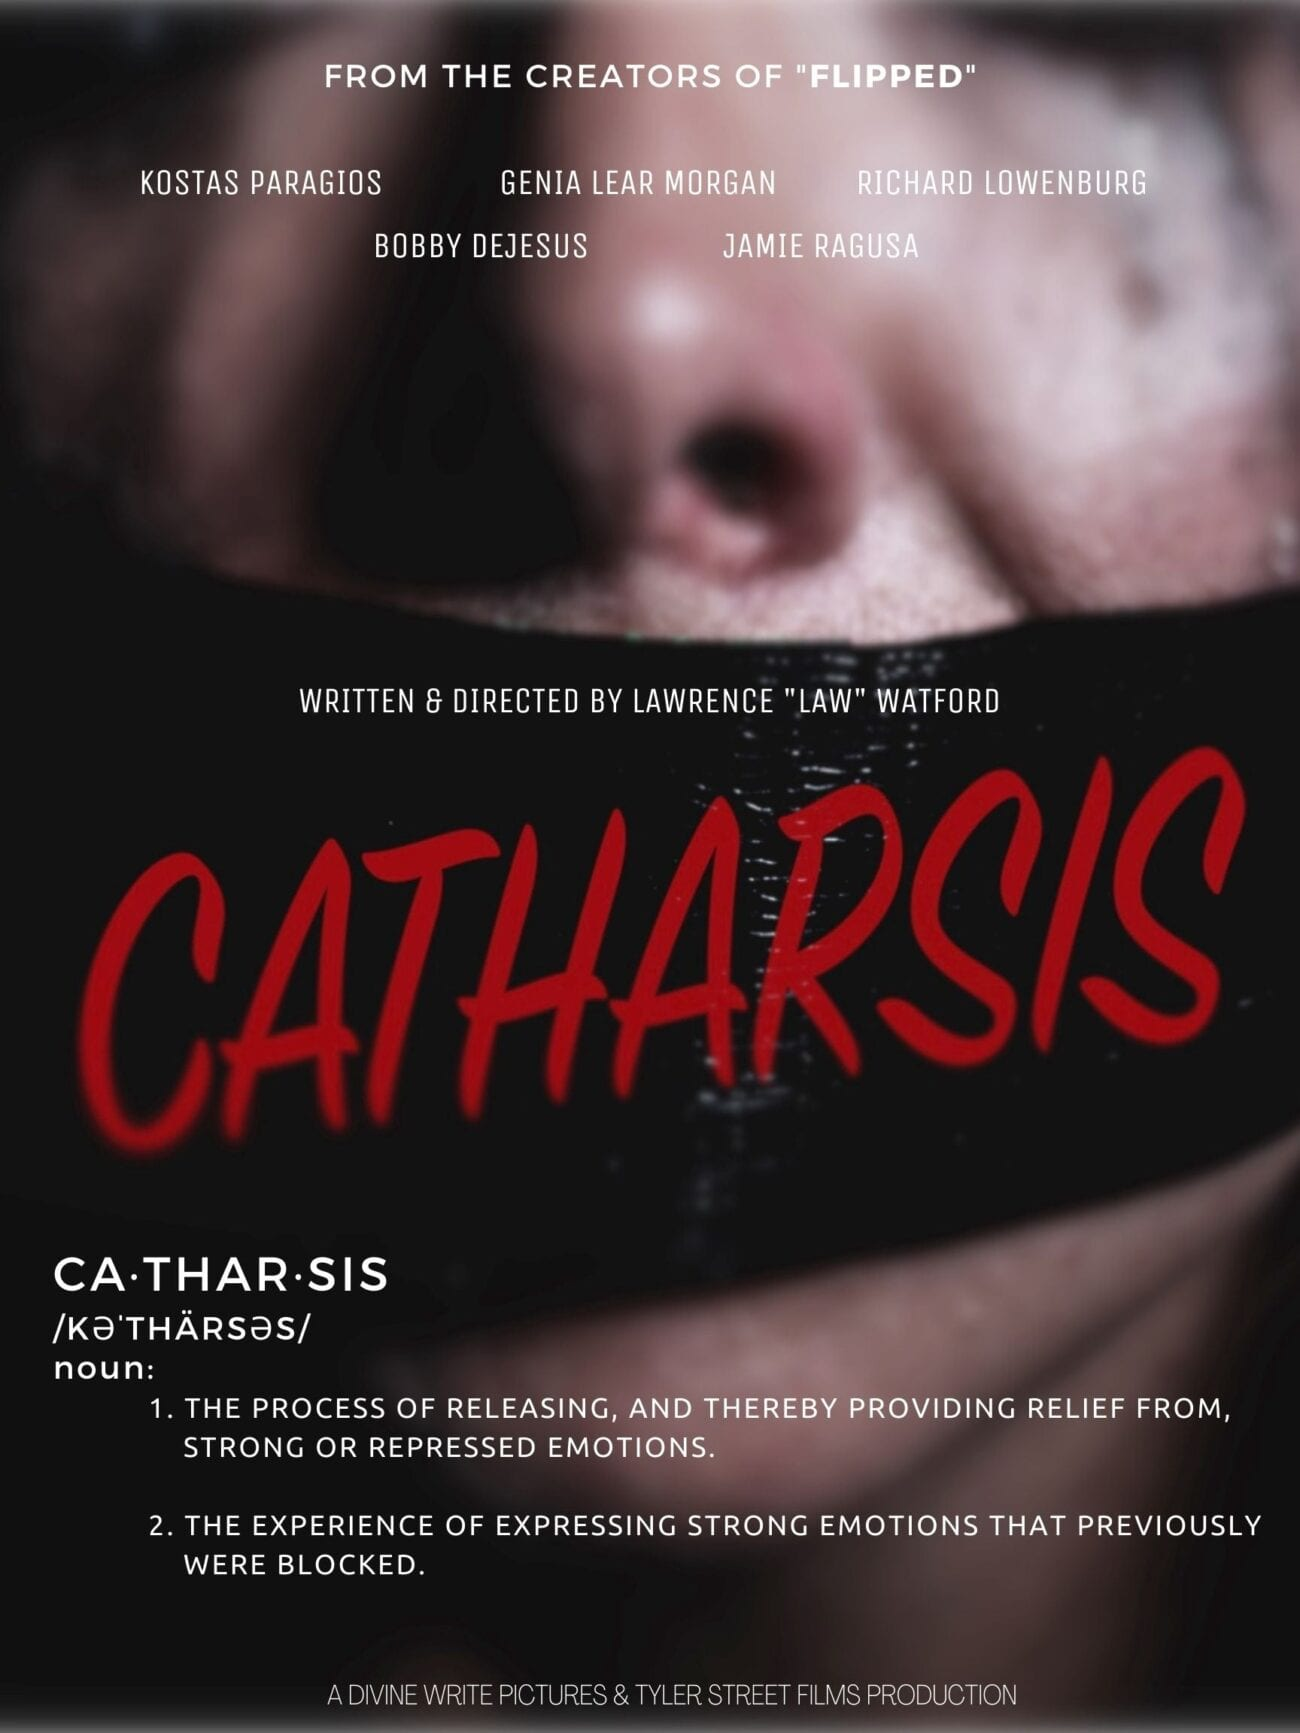 'Catharsis' is a short film by director Lawrence 'Law' Watford. Find out what the film and the director have to say about police brutality.